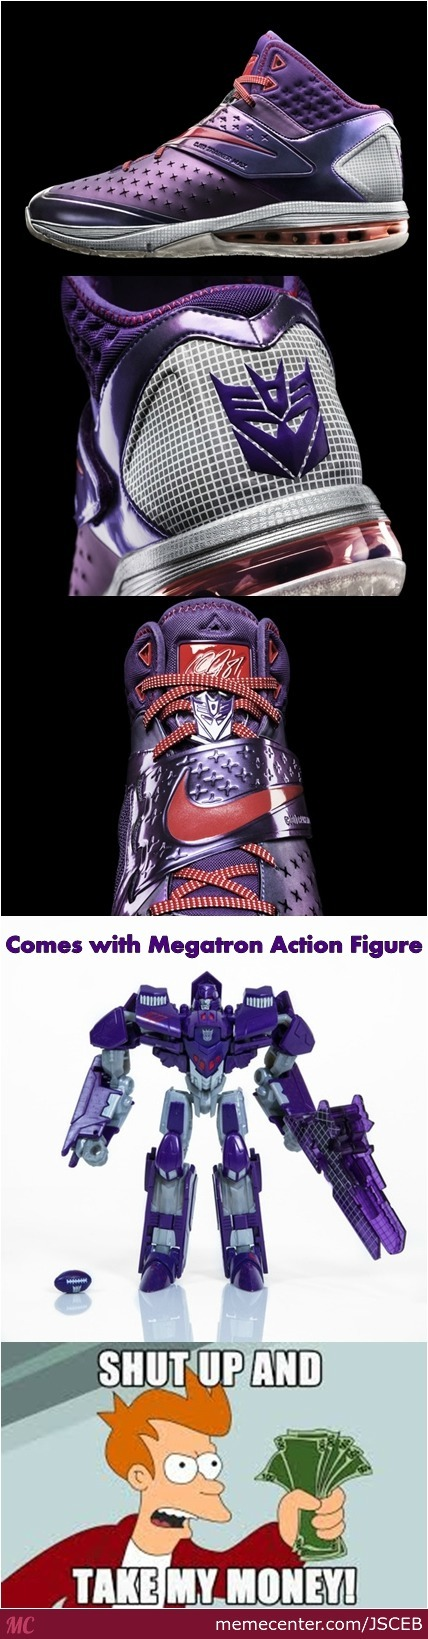 Nike Megatron Shoes